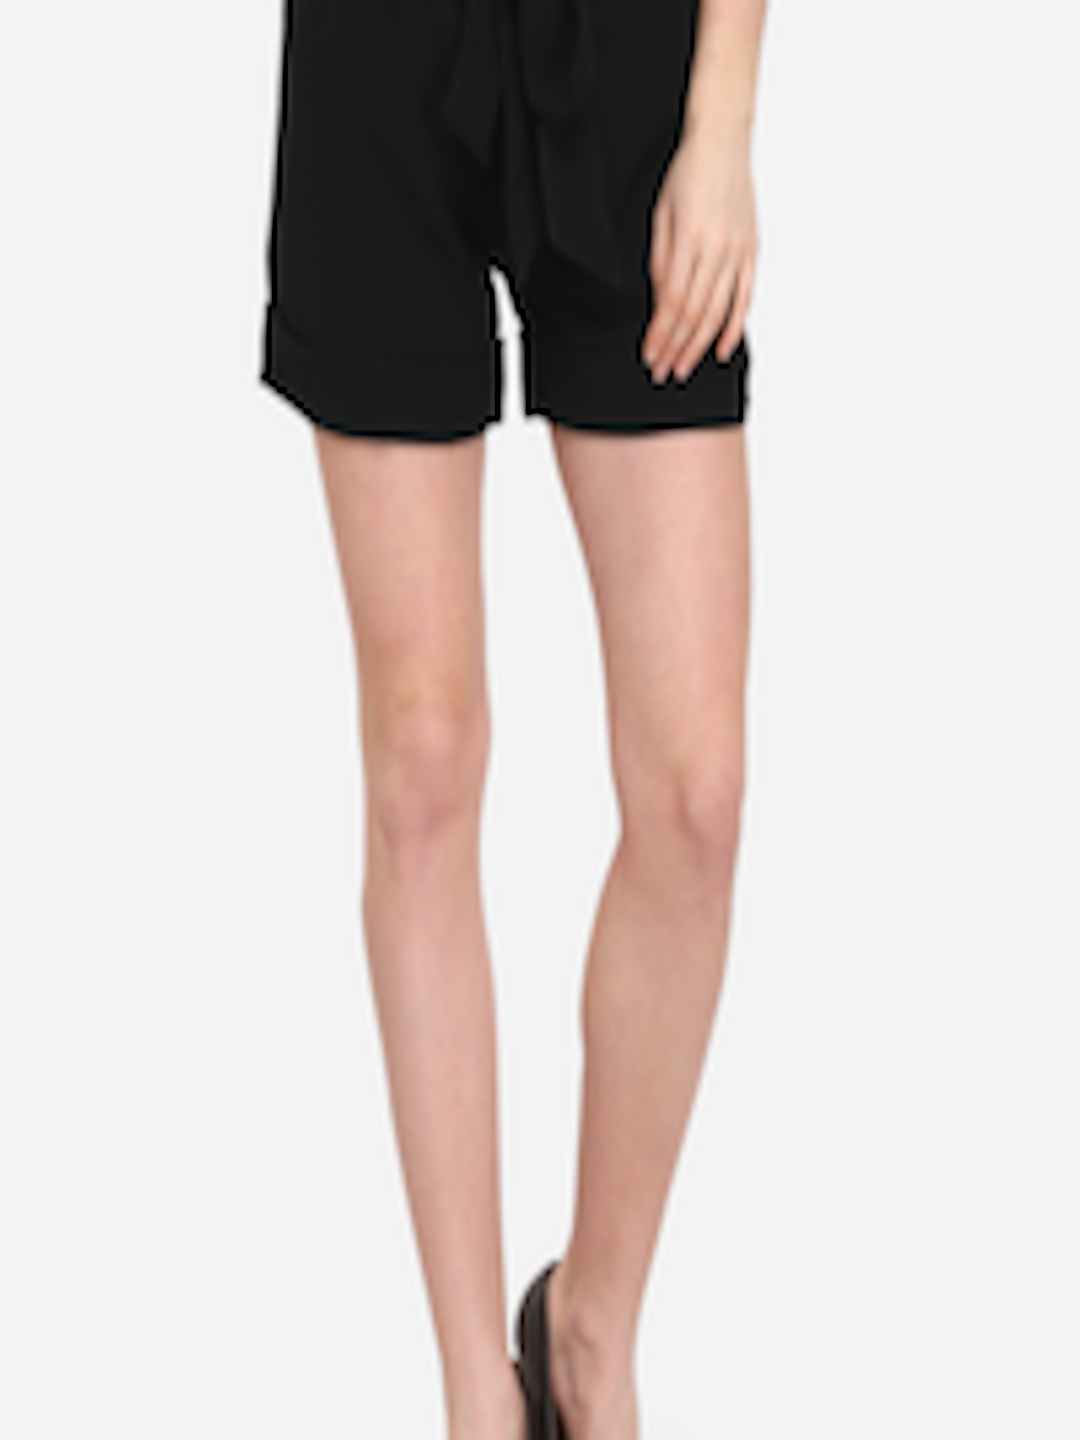 2672fcc43169b Buy Smarty Pants Women Black Solid Regular Fit Hot Pants - Shorts for Women  9328629 | Myntra